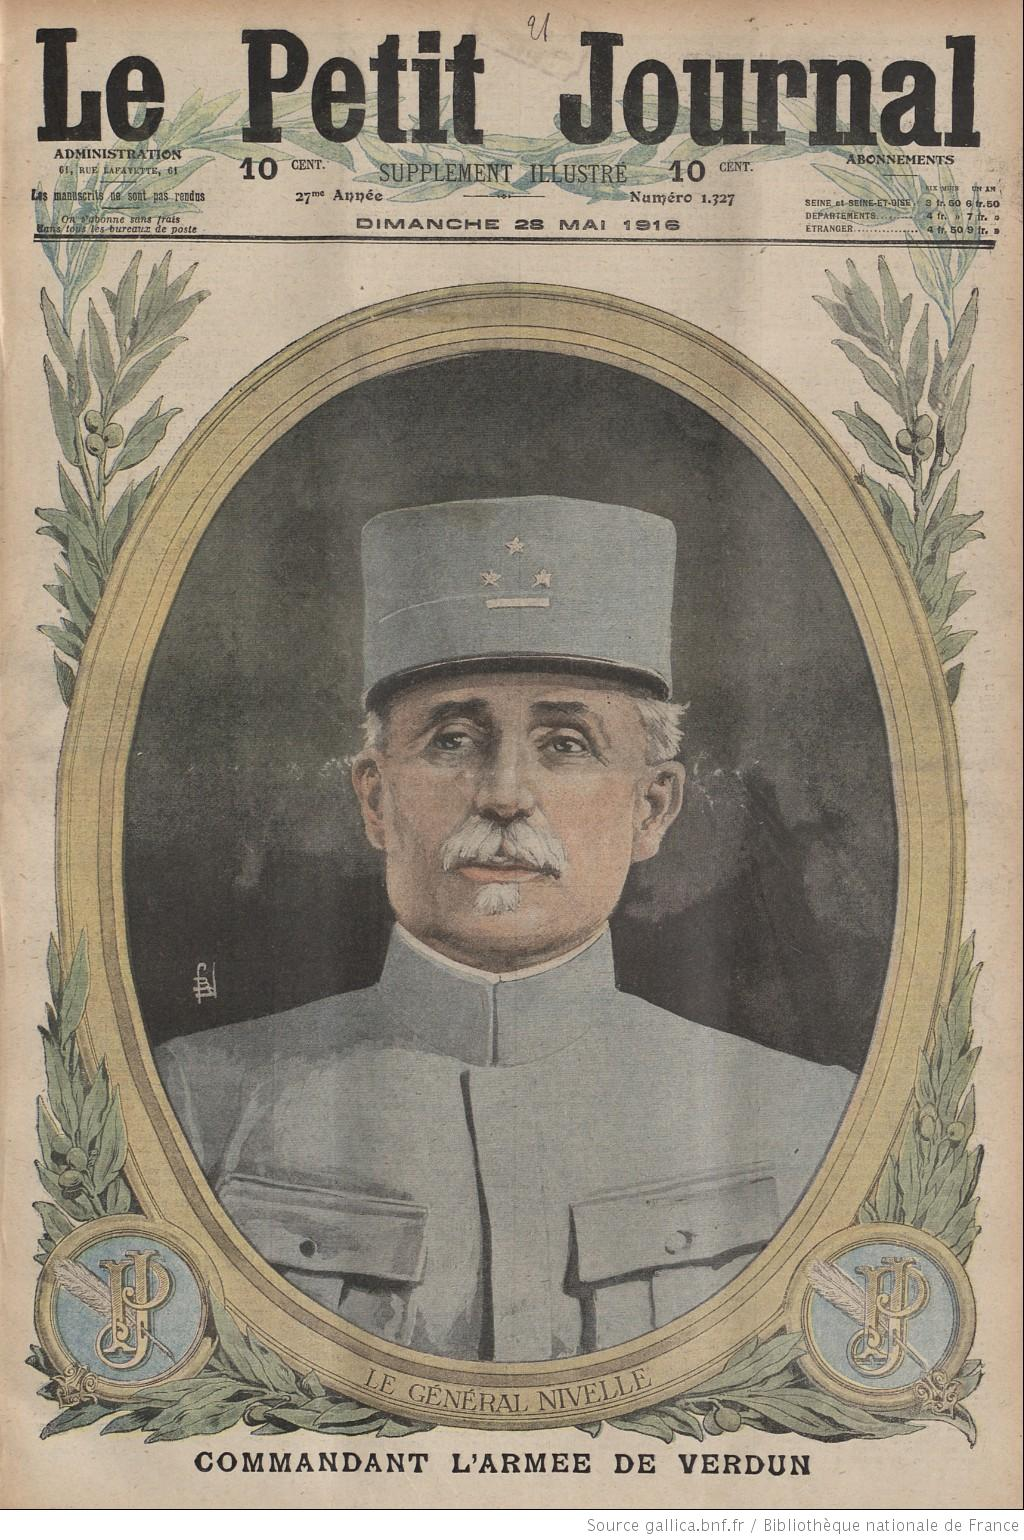 LPJ Illustre 1916-05-28 A.jpg